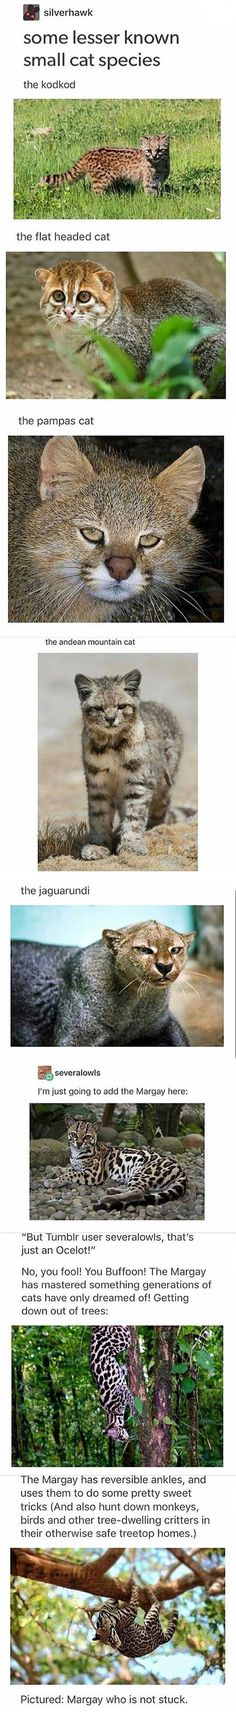 sílverhawk some lesser known small cat species the kodkod – popular memes on the Cute Funny Animals, Cute Cats, Funny Cats, Animal Facts, Animal Memes, Animals And Pets, Baby Animals, Cat Species, Small Cat